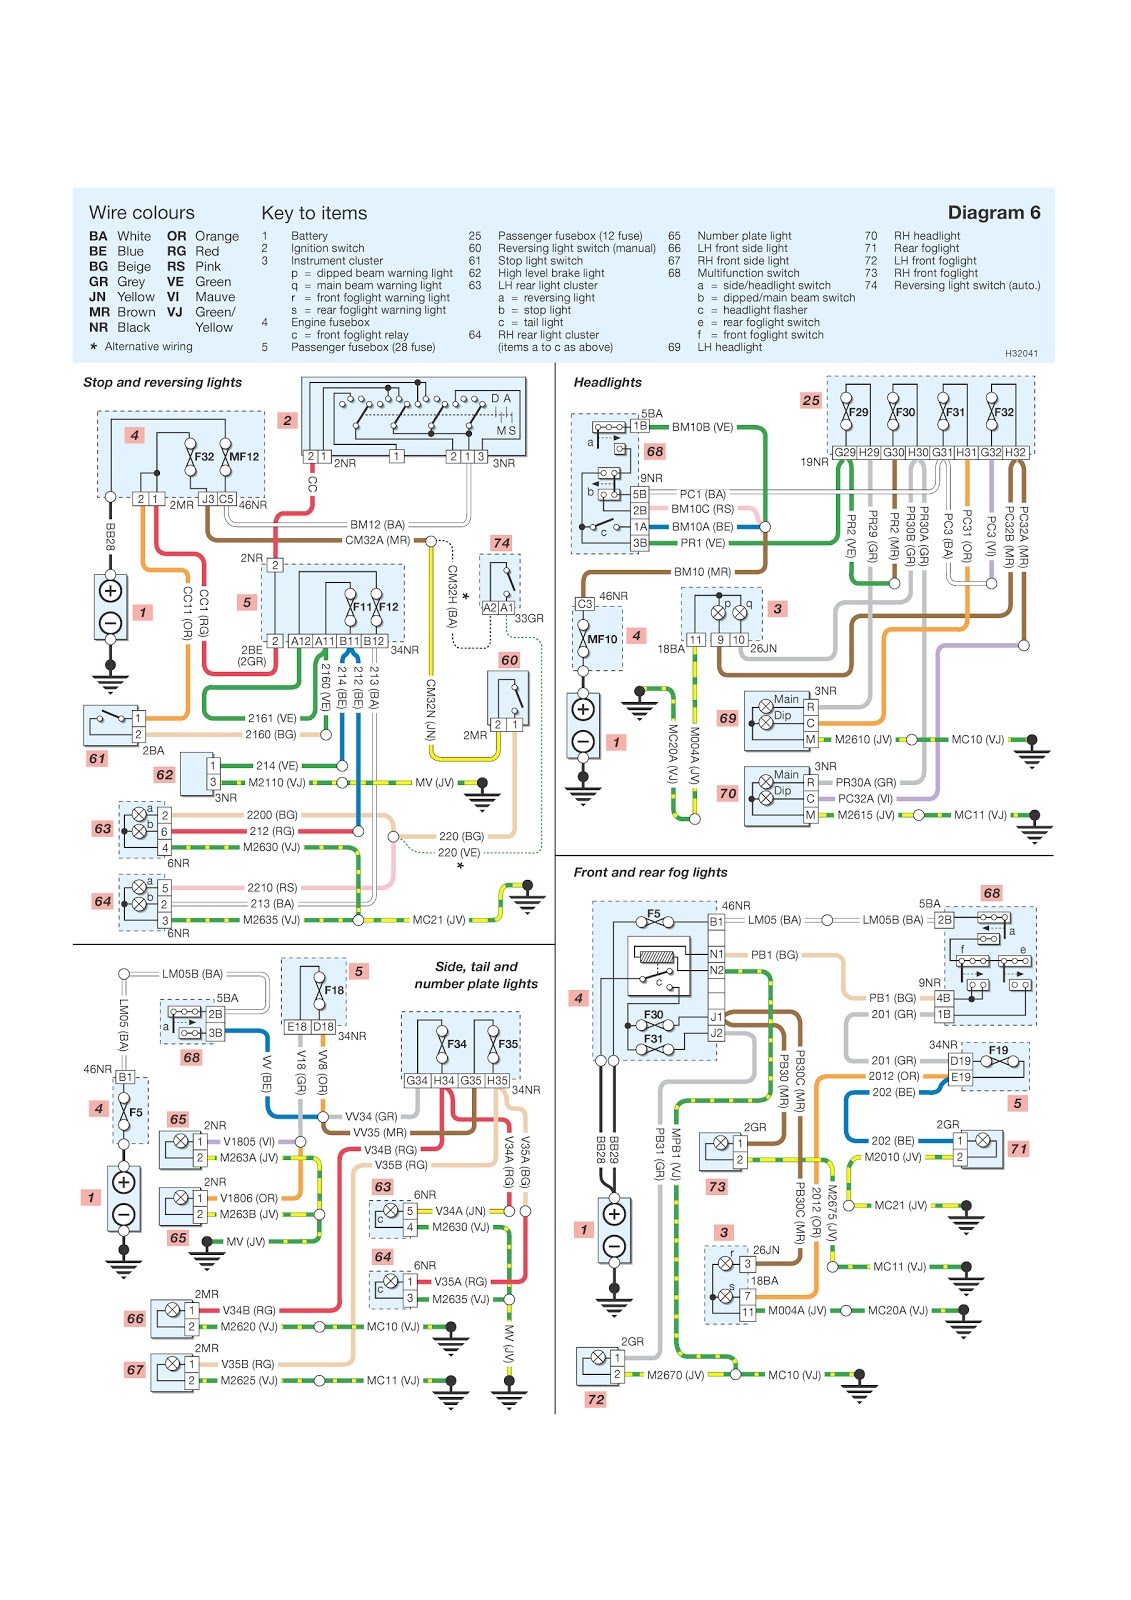 How To Do Home Electrical Wiring Diagrams Gibson Sg Pro Peugeot 206 Exterior Lighting | Schematic Solutions